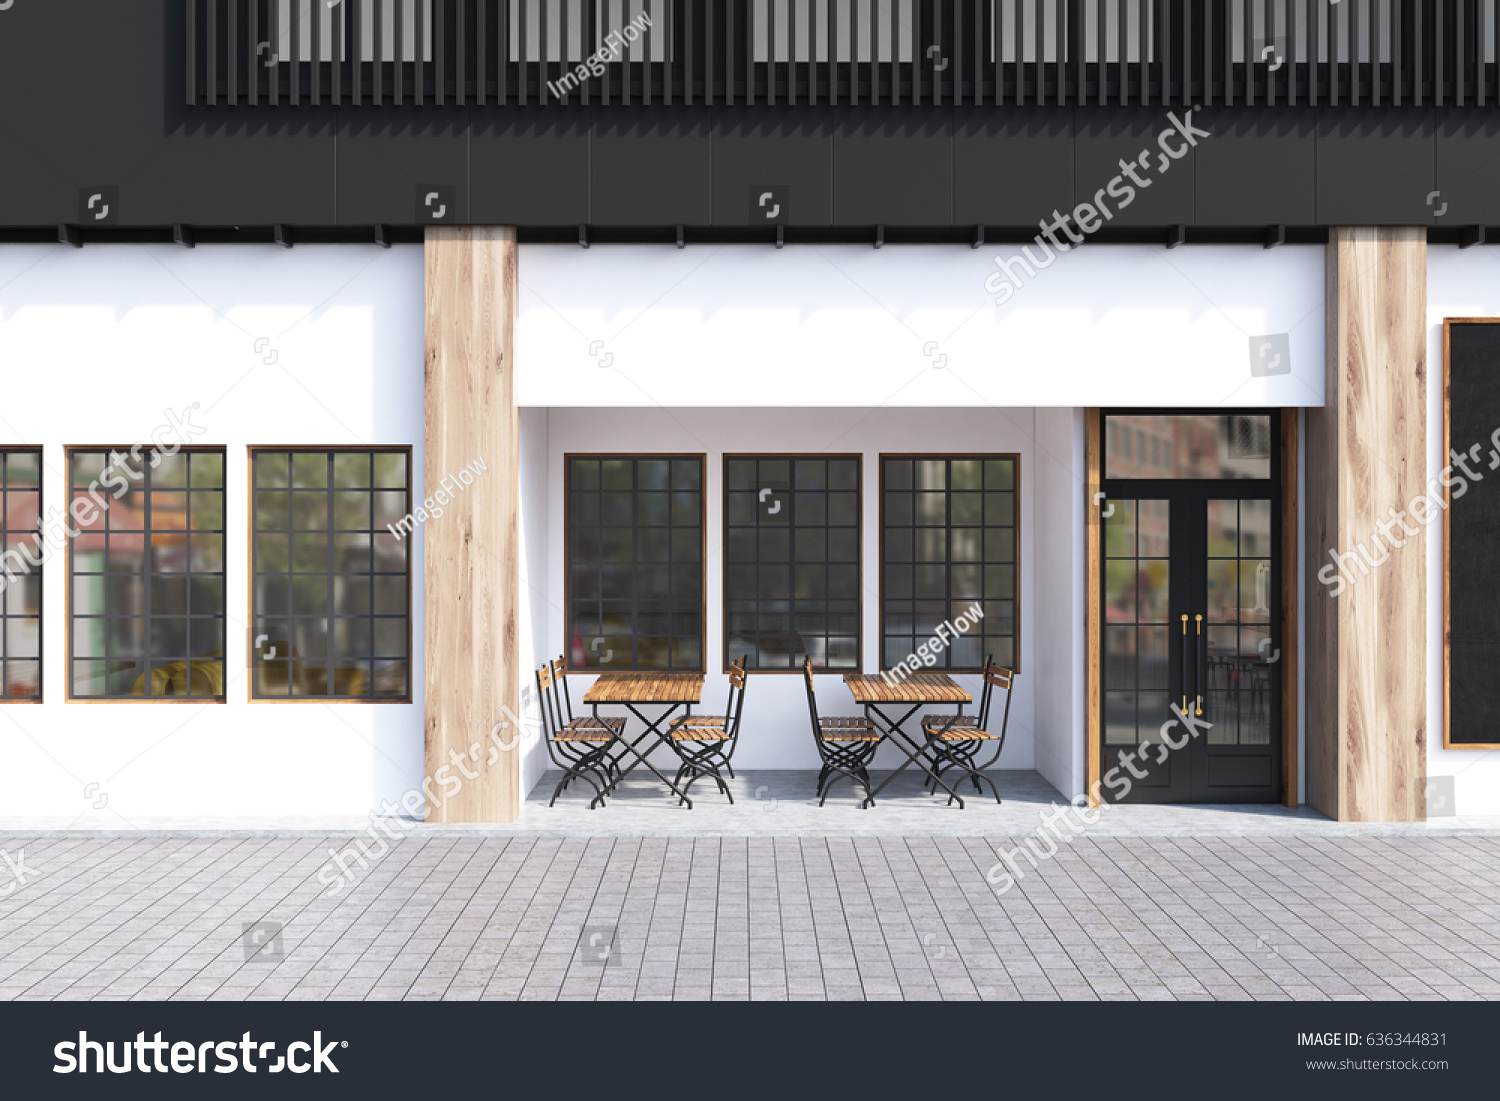 cafe exterior with white walls and two wooden tables with chairs standing near a door